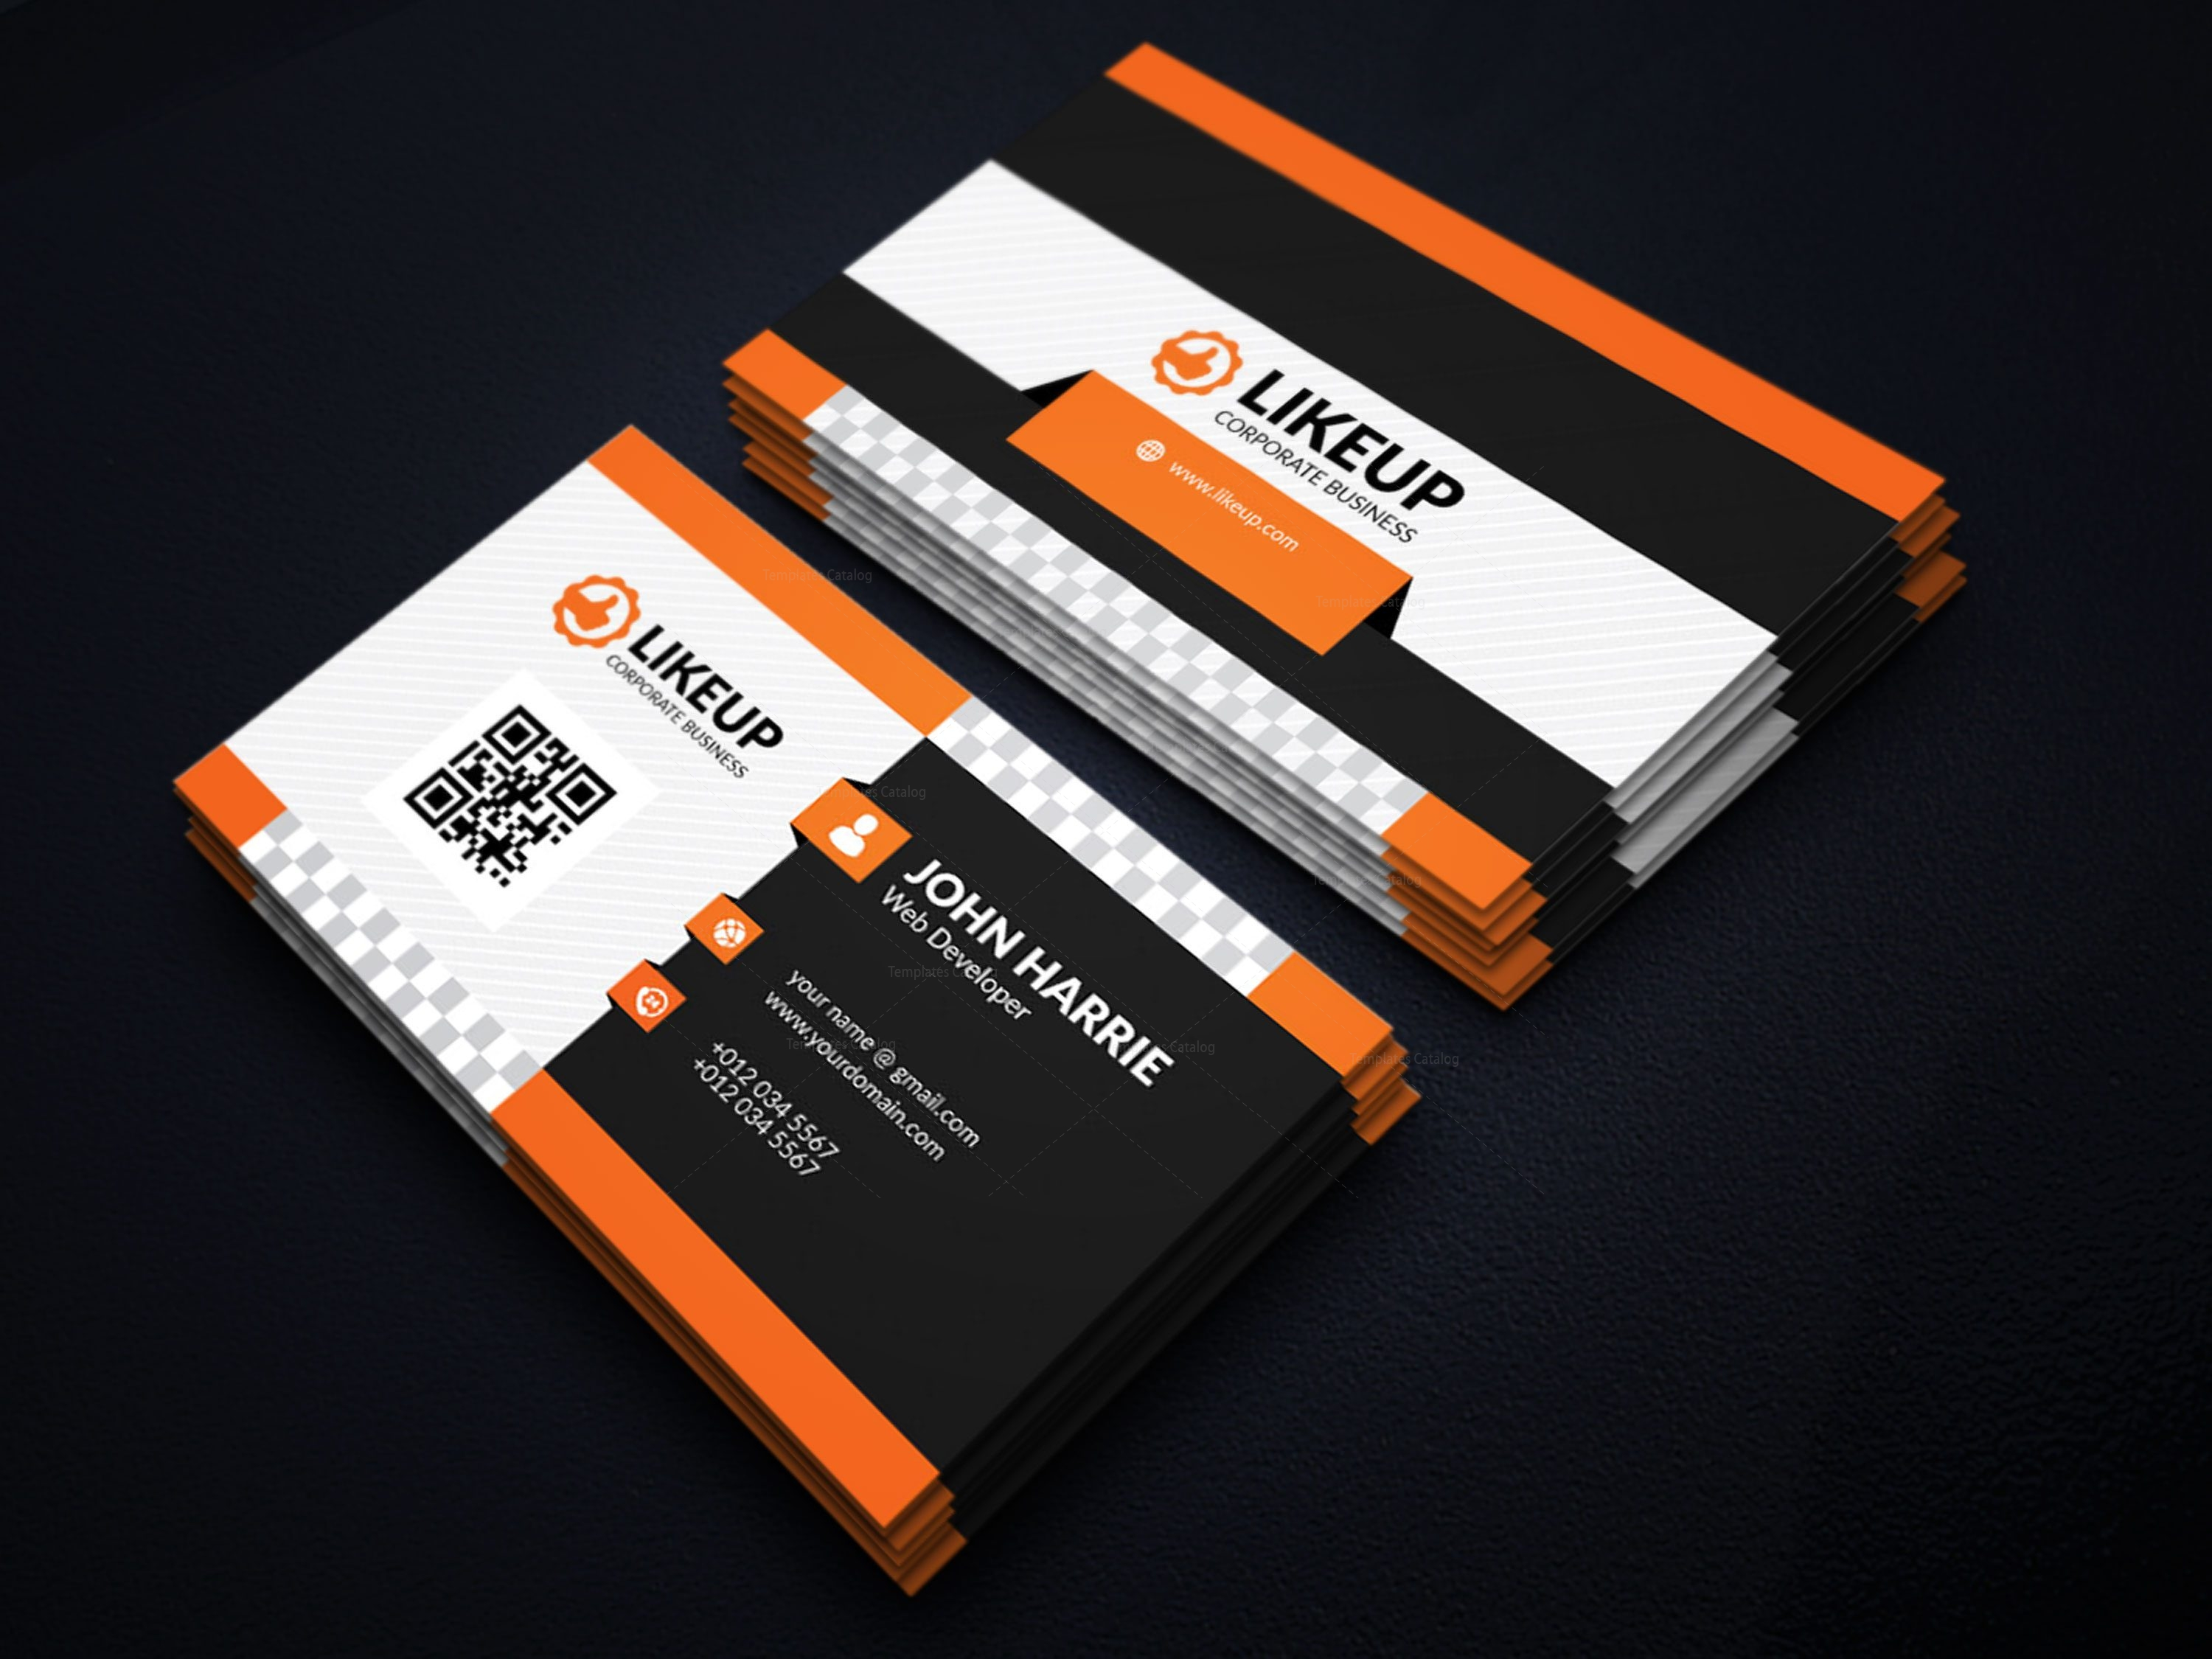 Eps like business card design template 001598 template catalog eps like business card design template 3 flashek Gallery